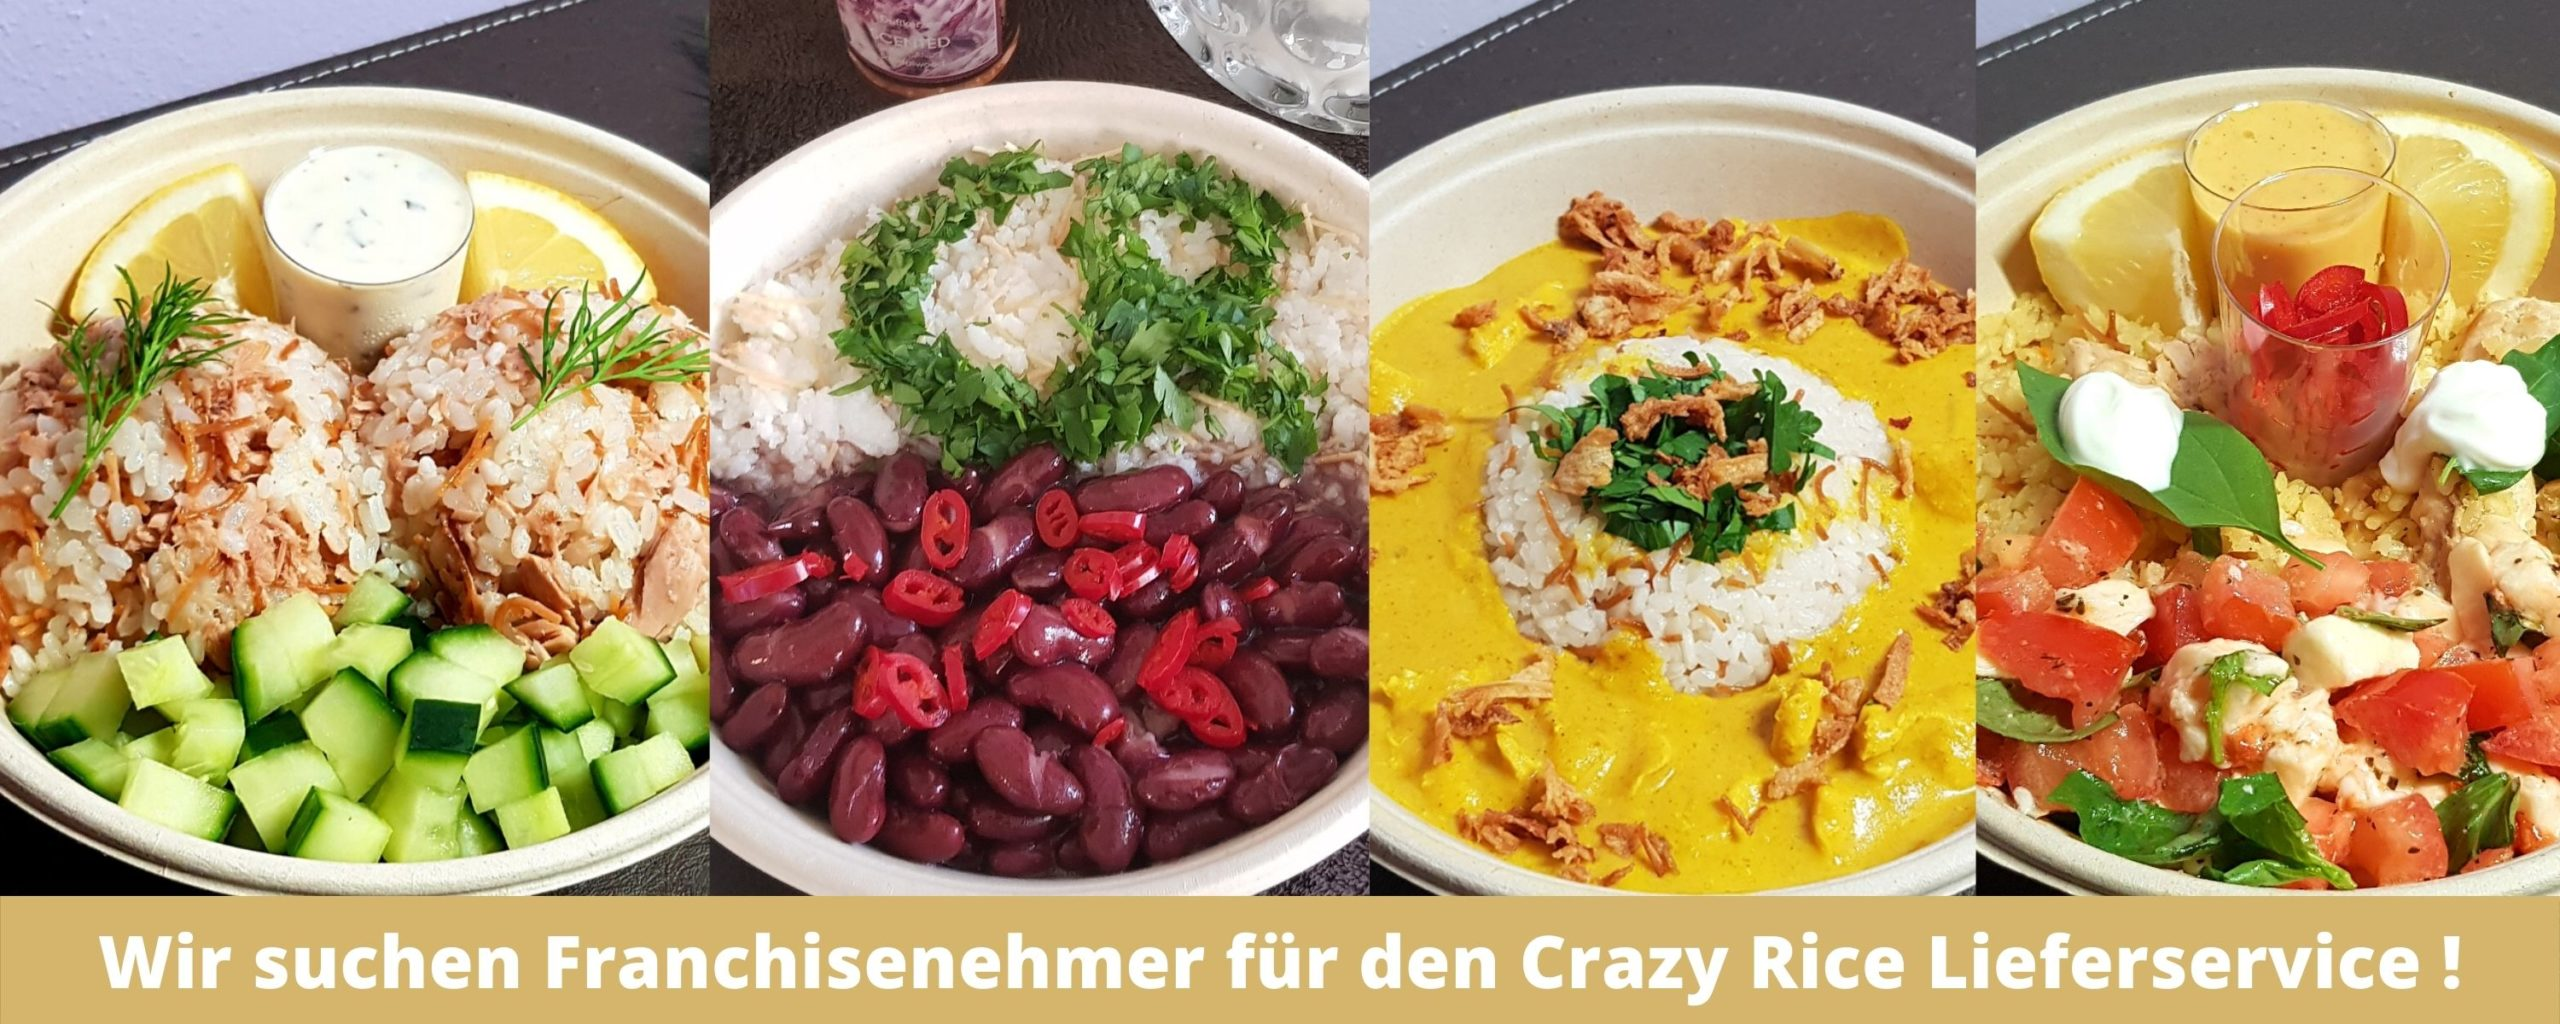 Crazy Rice Website Slider Startseite